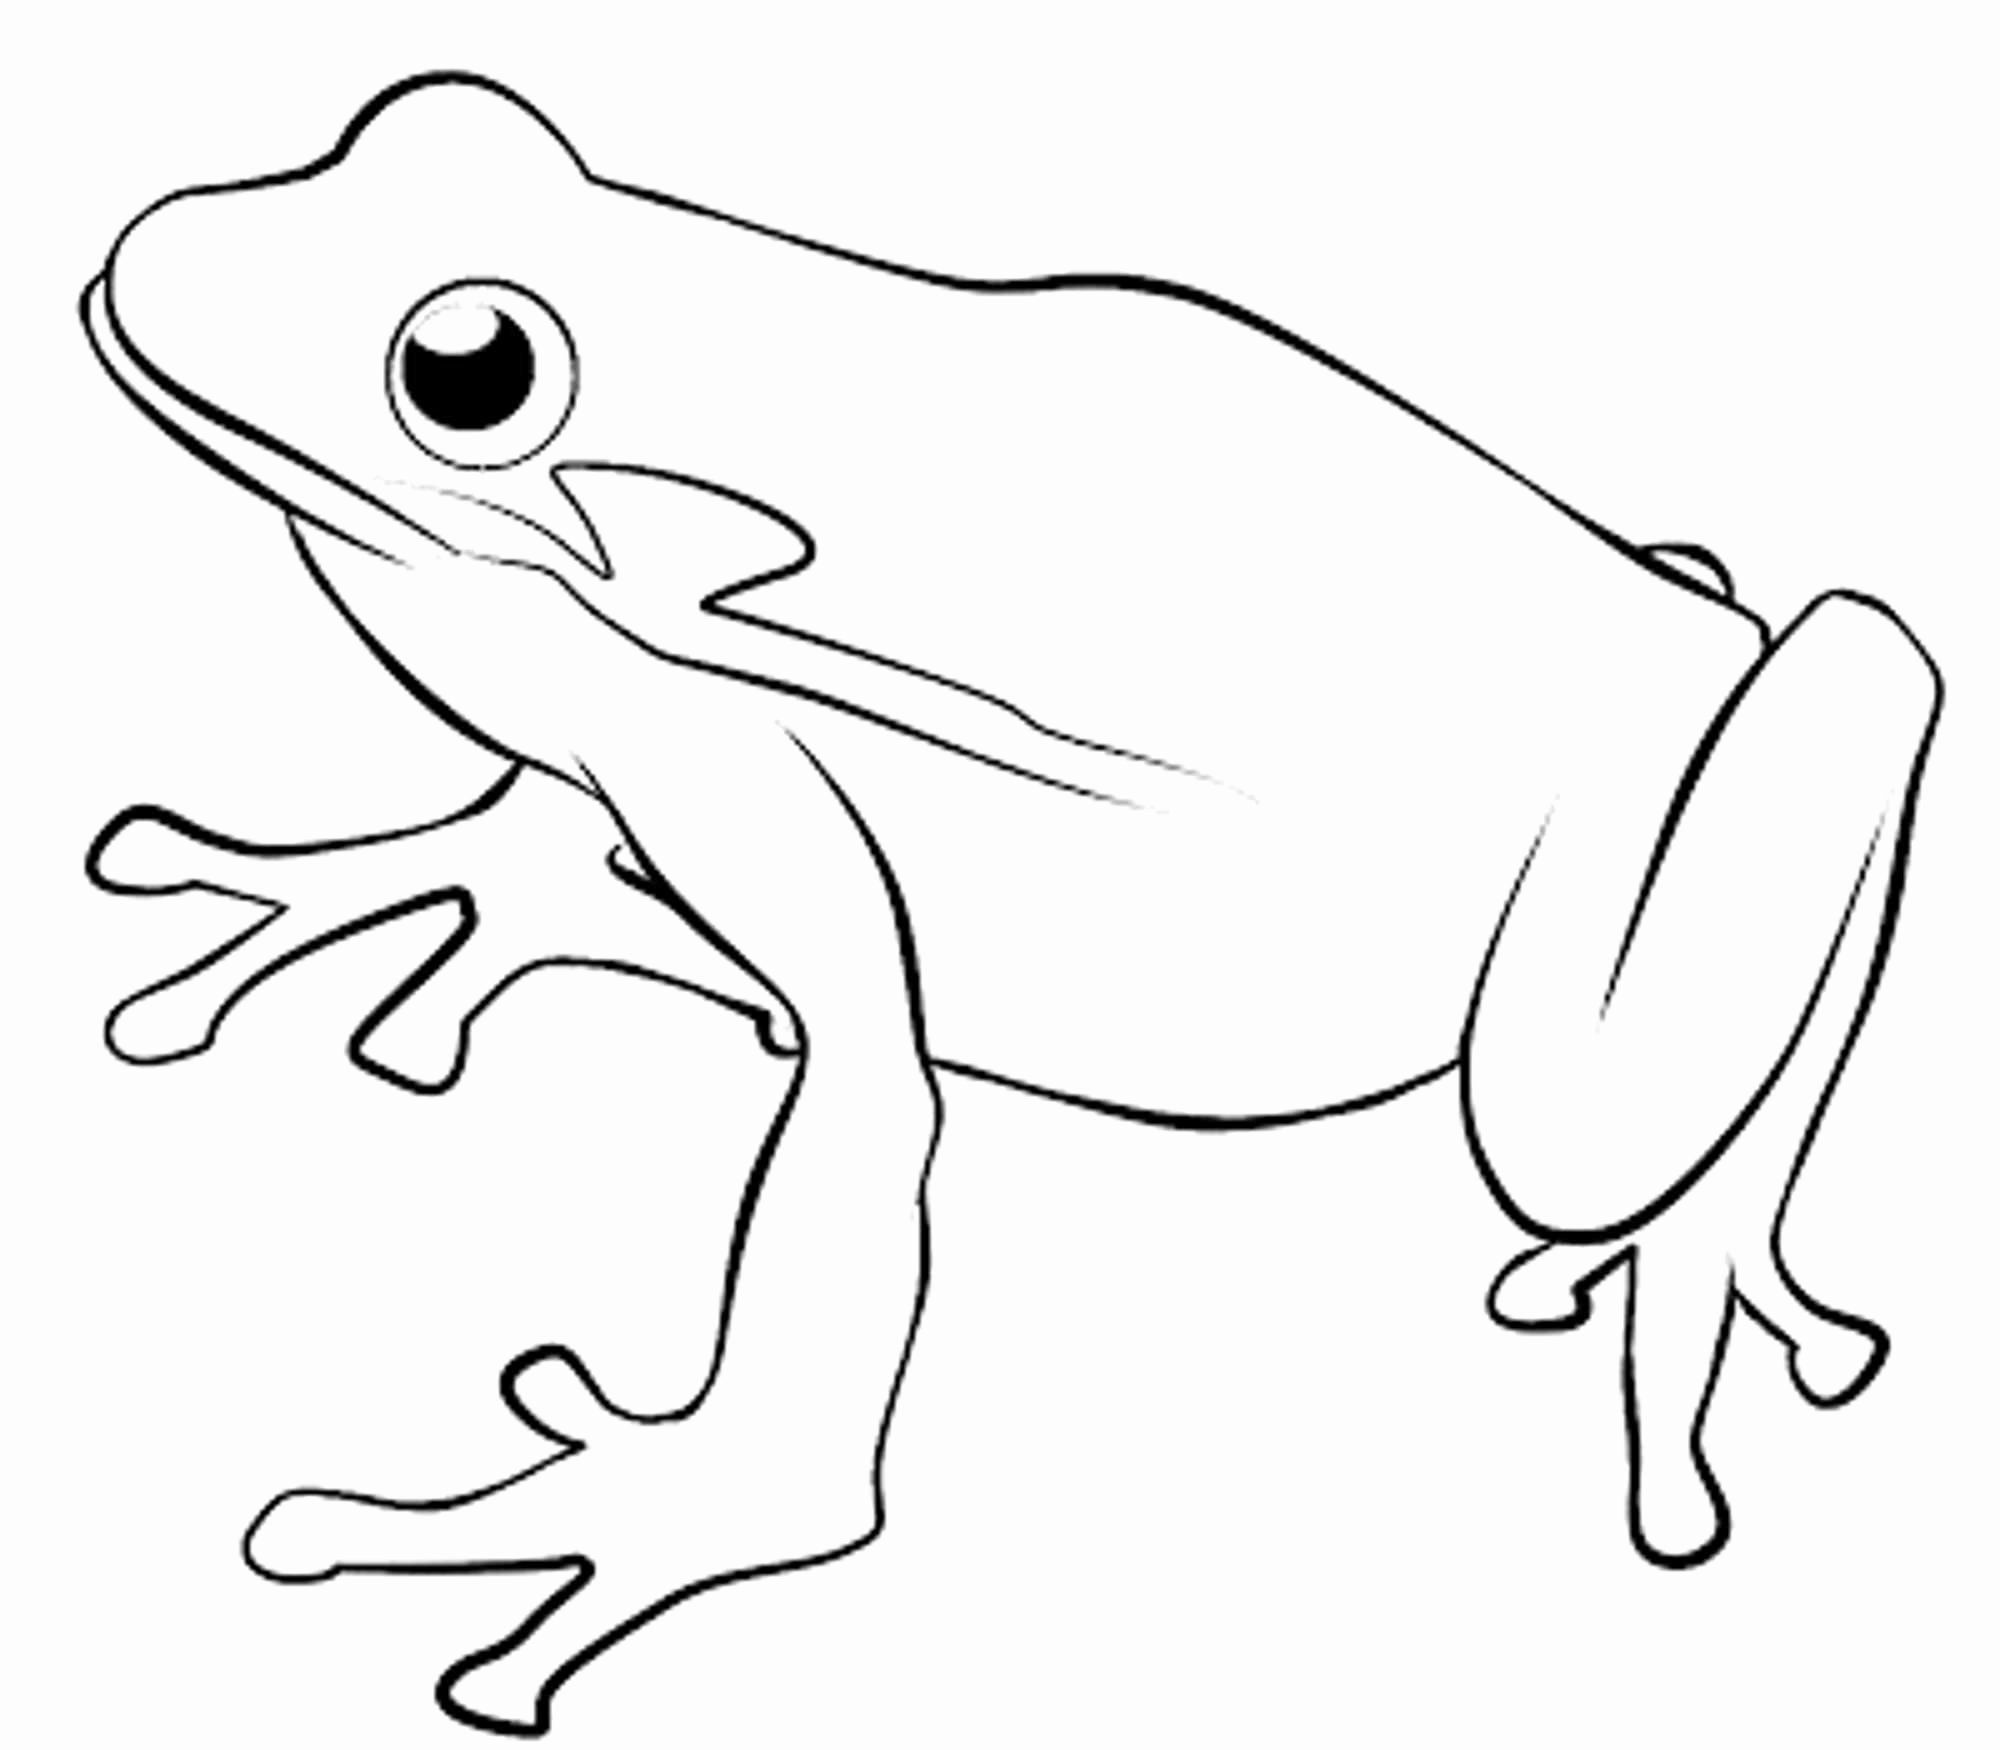 32 Tree Frog Coloring Page Adult Coloring Pages Coloring Pages